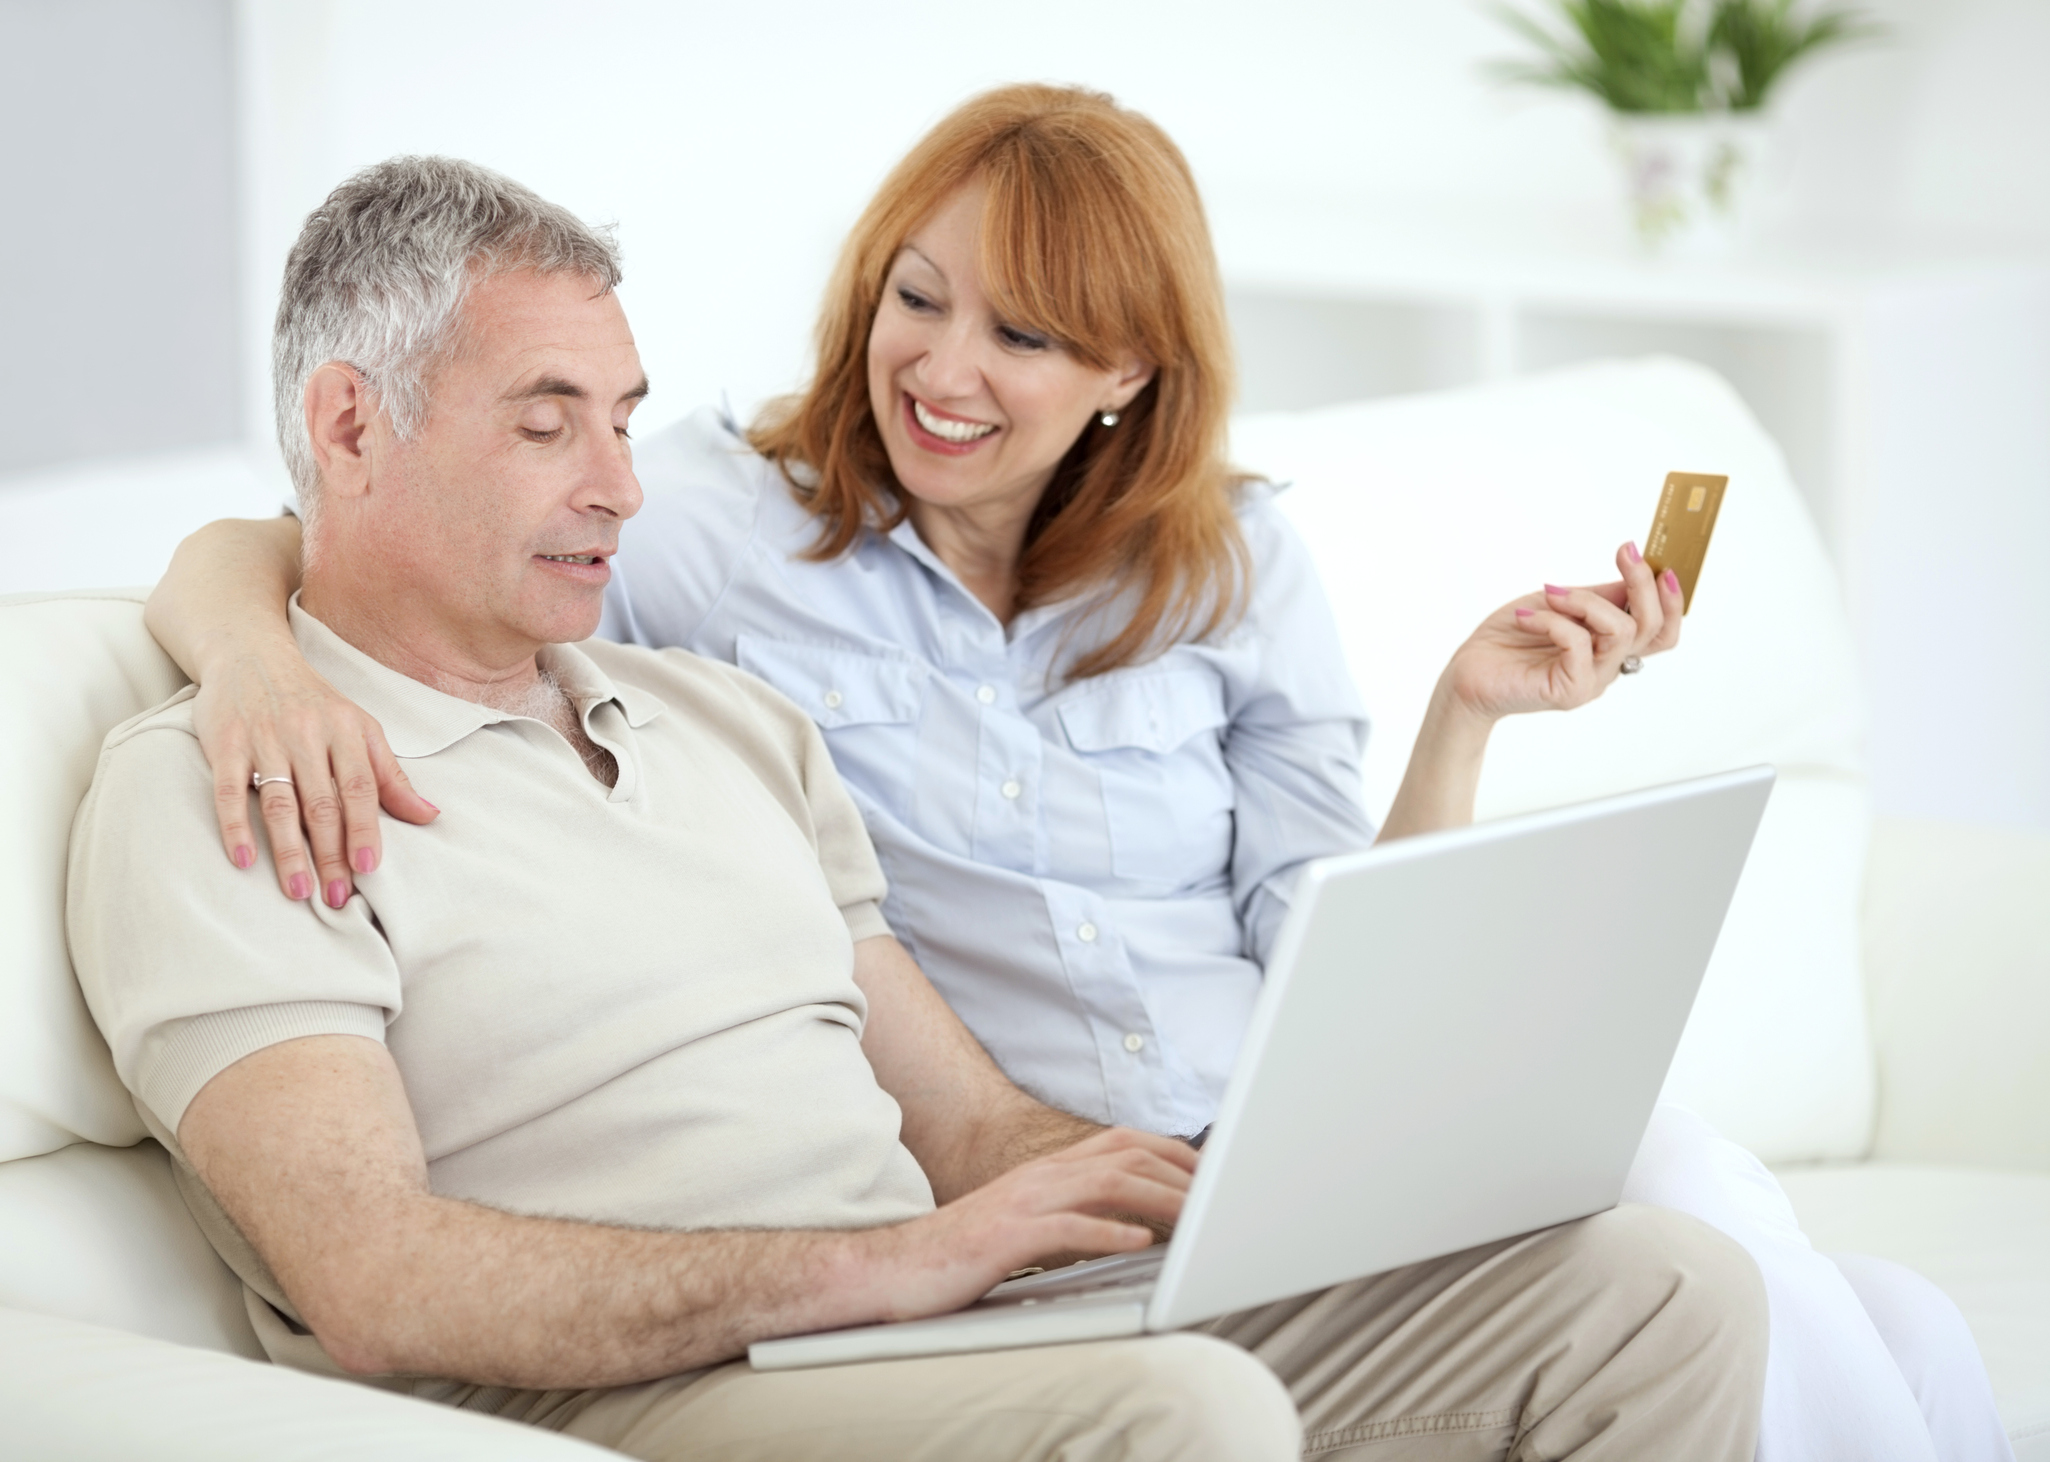 The Online Shopping Habits of Today's Baby Boomers